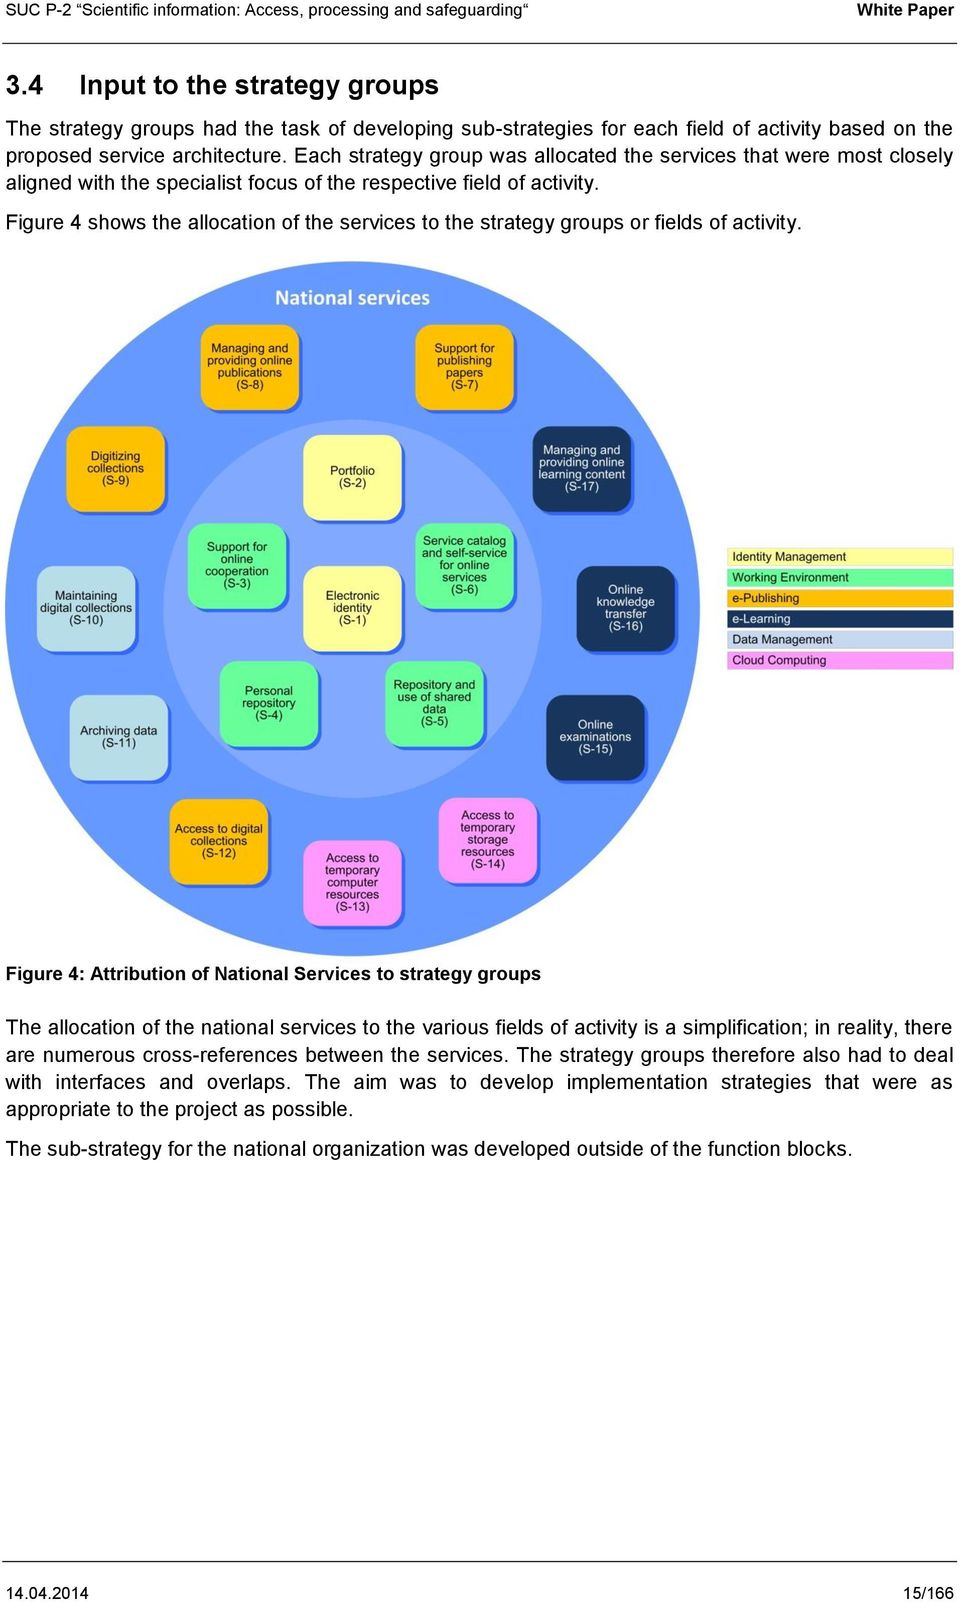 Figure 4 shows the allocation of the services to the strategy groups or fields of activity.